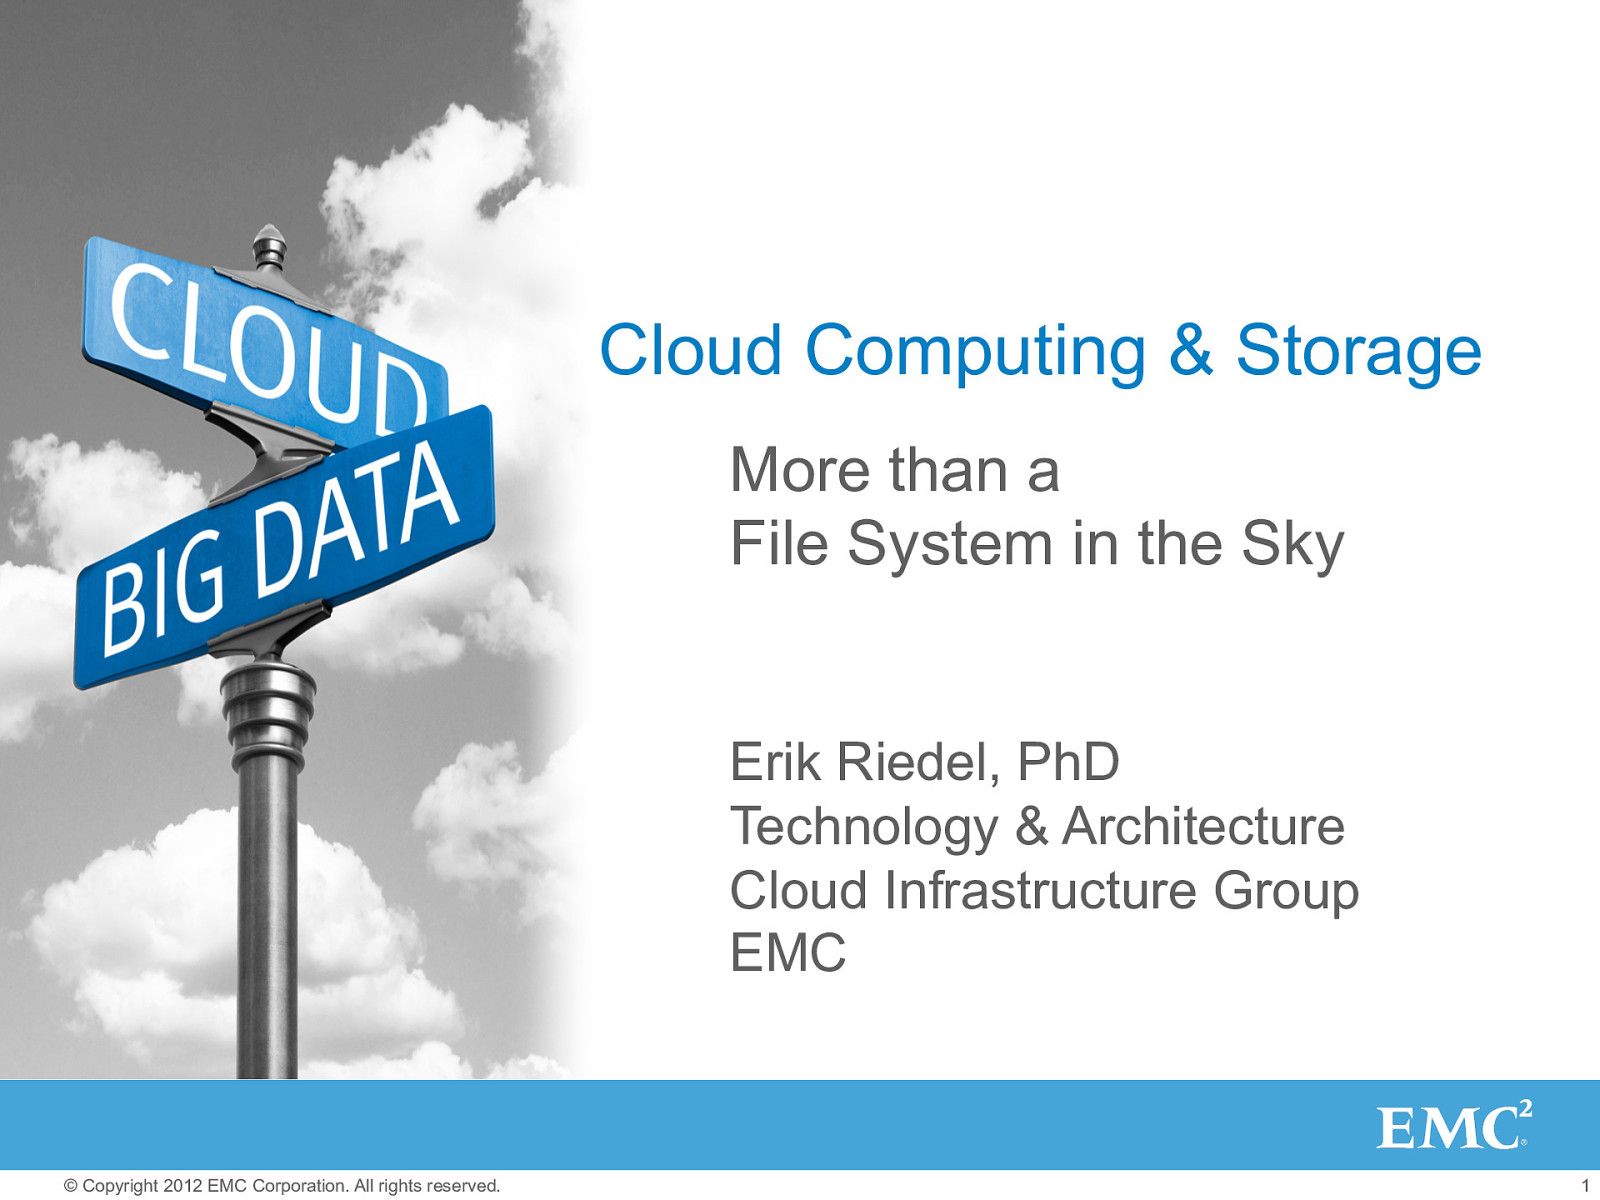 Cloud Computing & Storage - More than a File System in the Sky